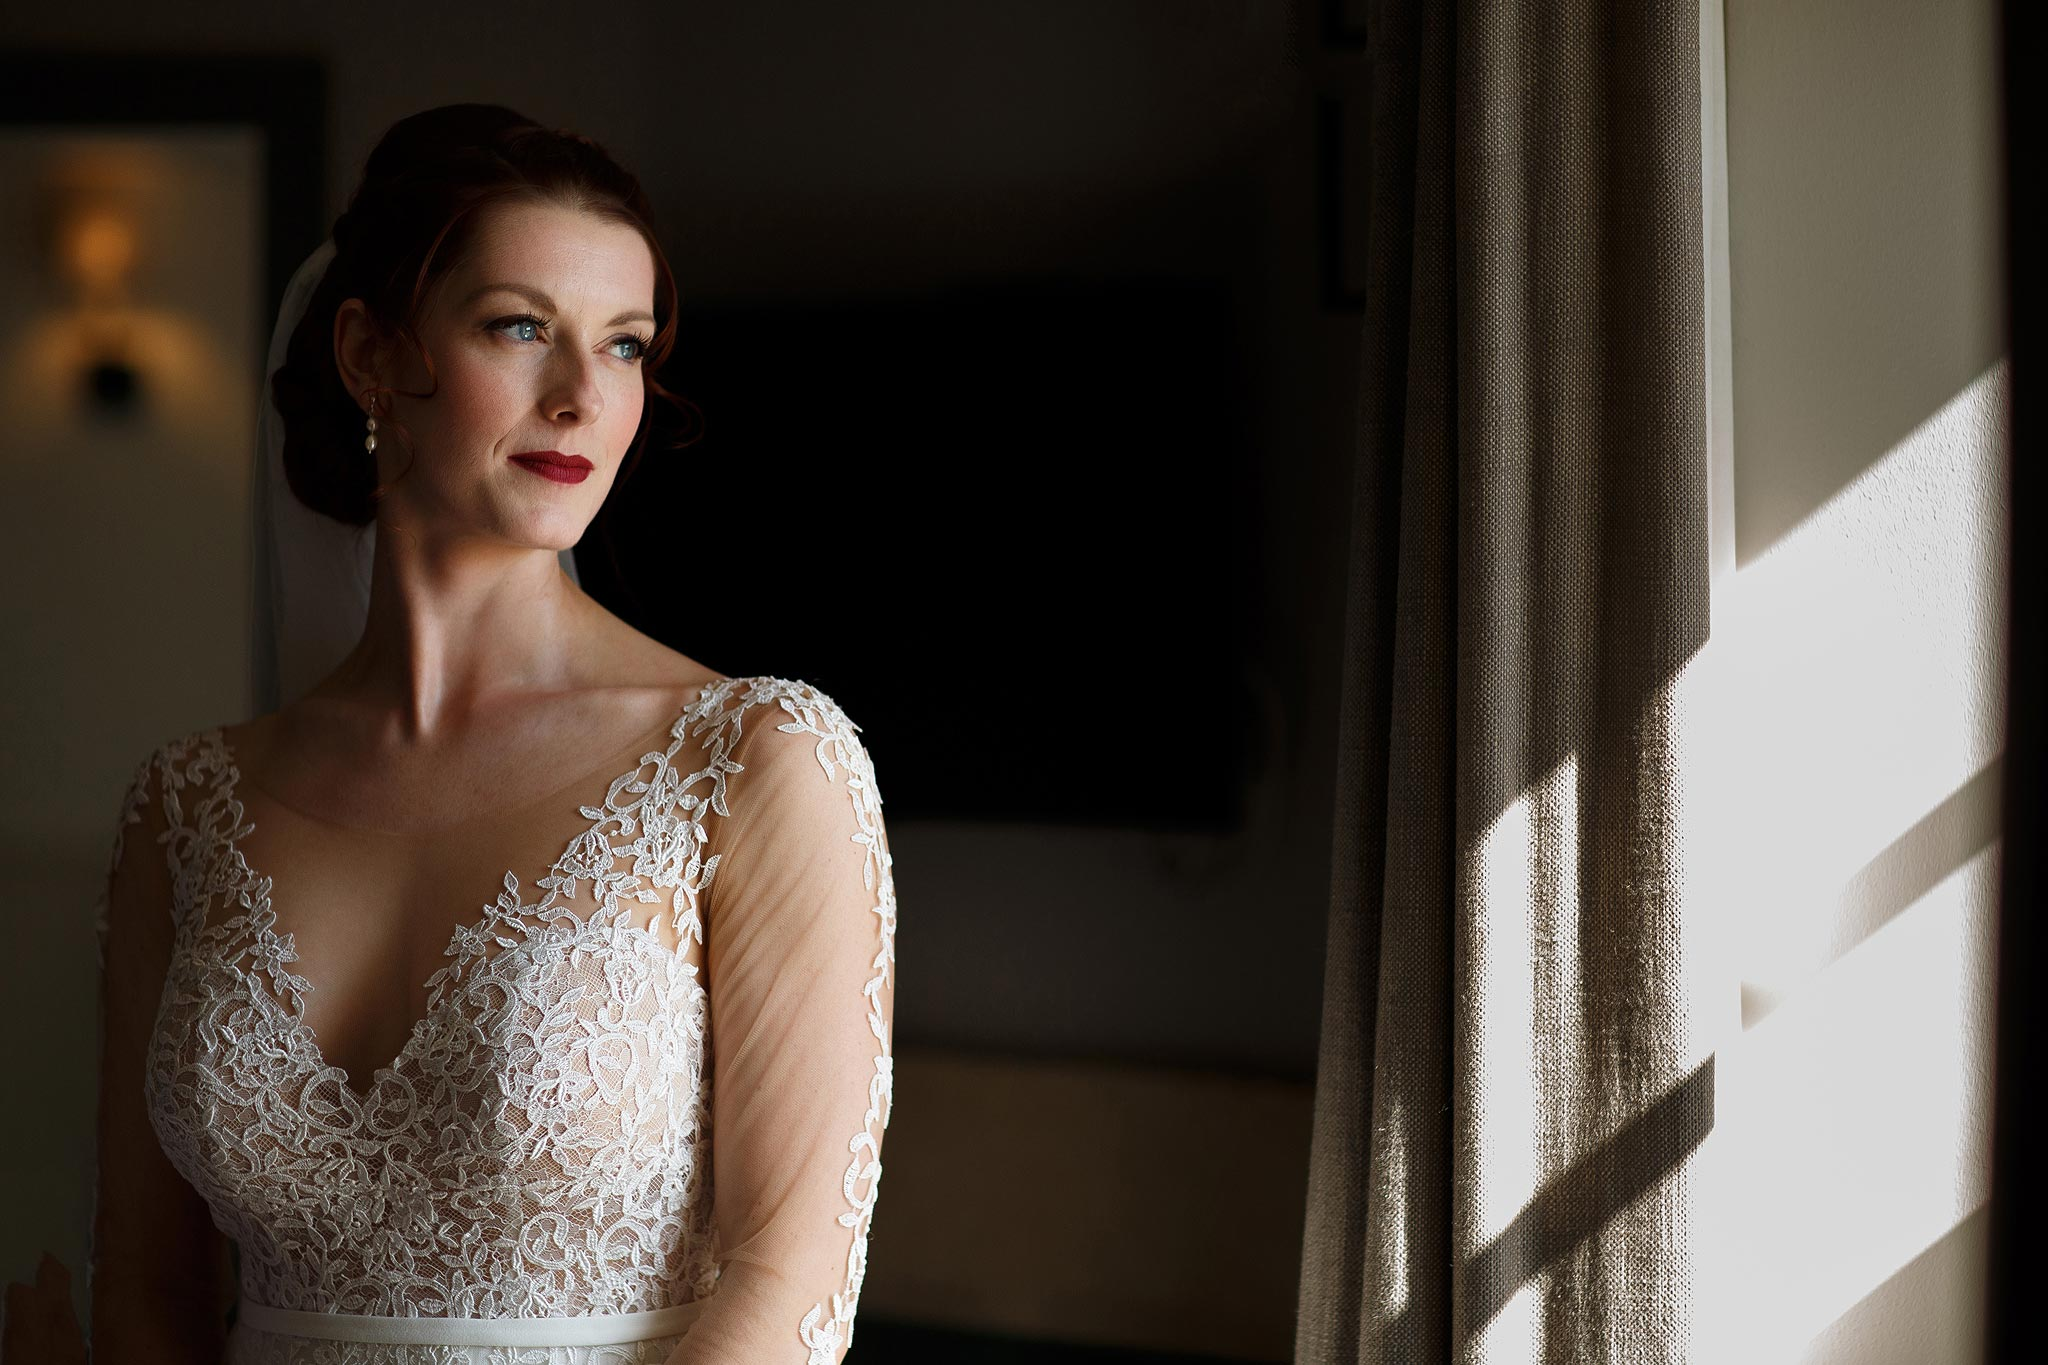 Bride with gorgeous long sleeved dress looking out the window